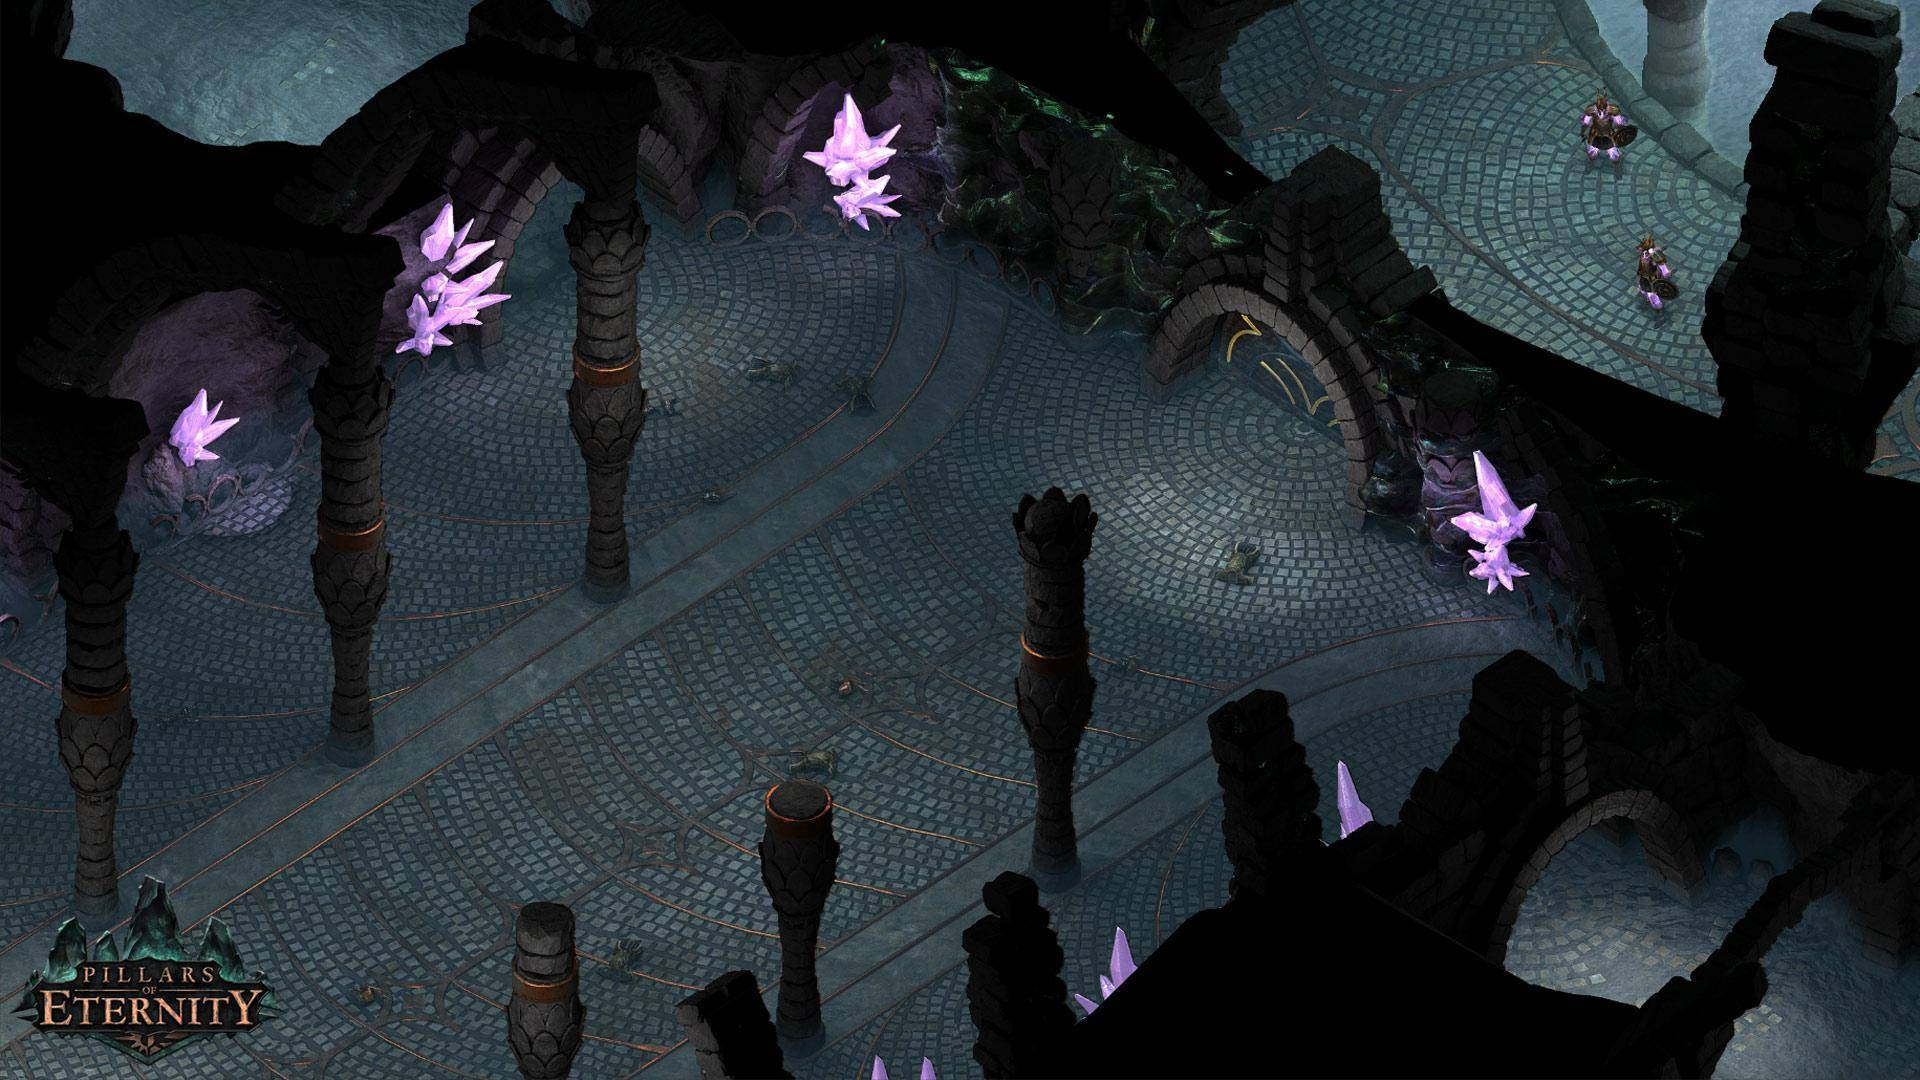 Article title about Pillars of Eternity